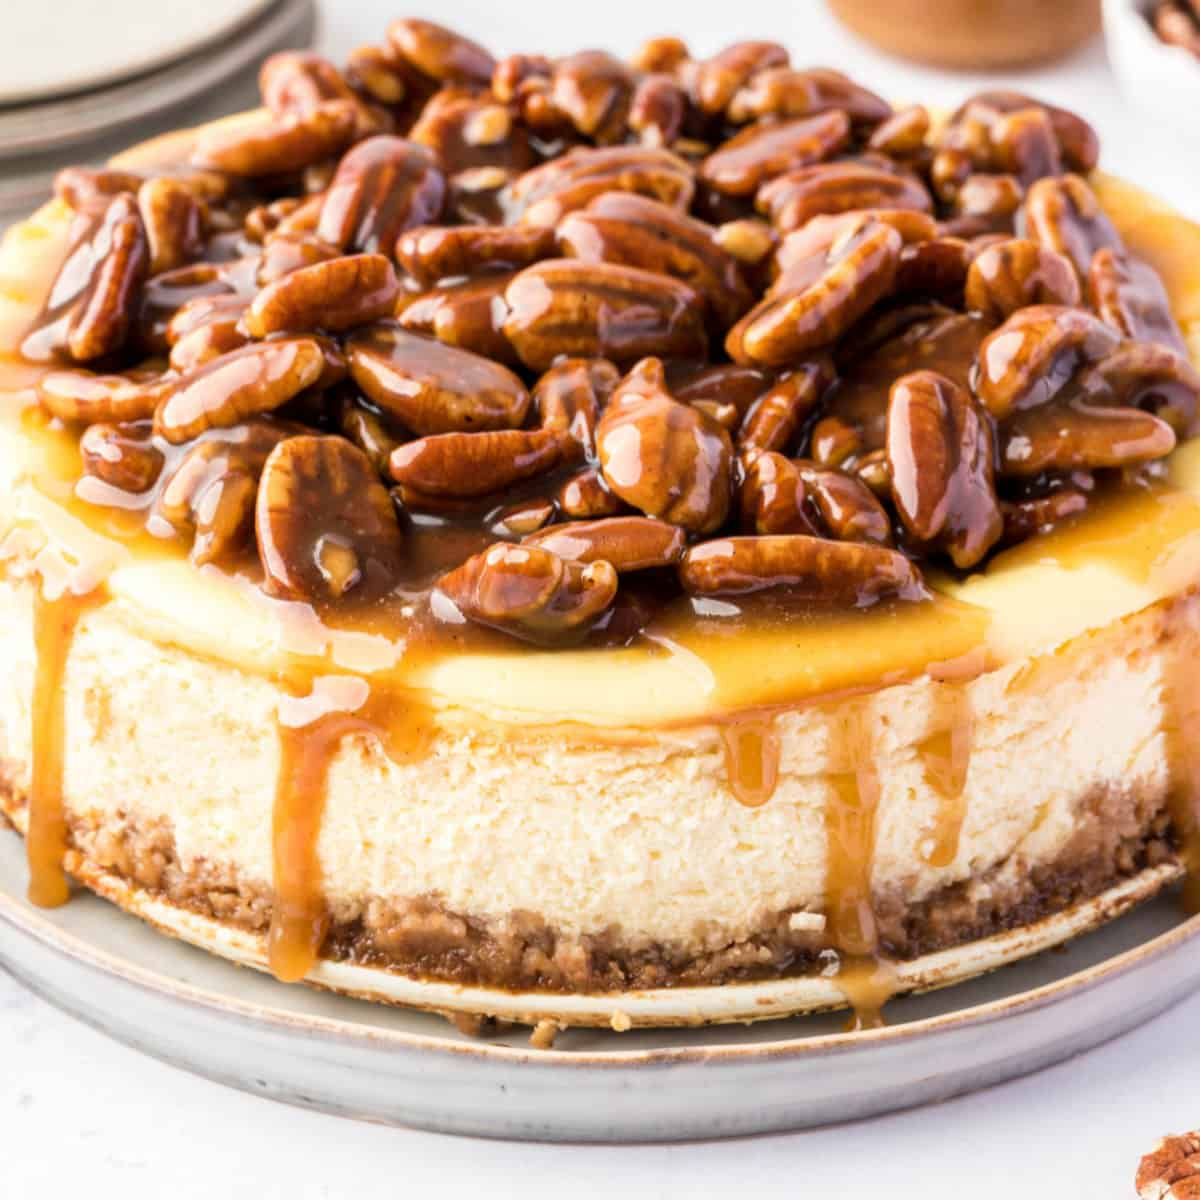 square image of a whole pecan pie cheesecake with caramel sauce dropping down the sides